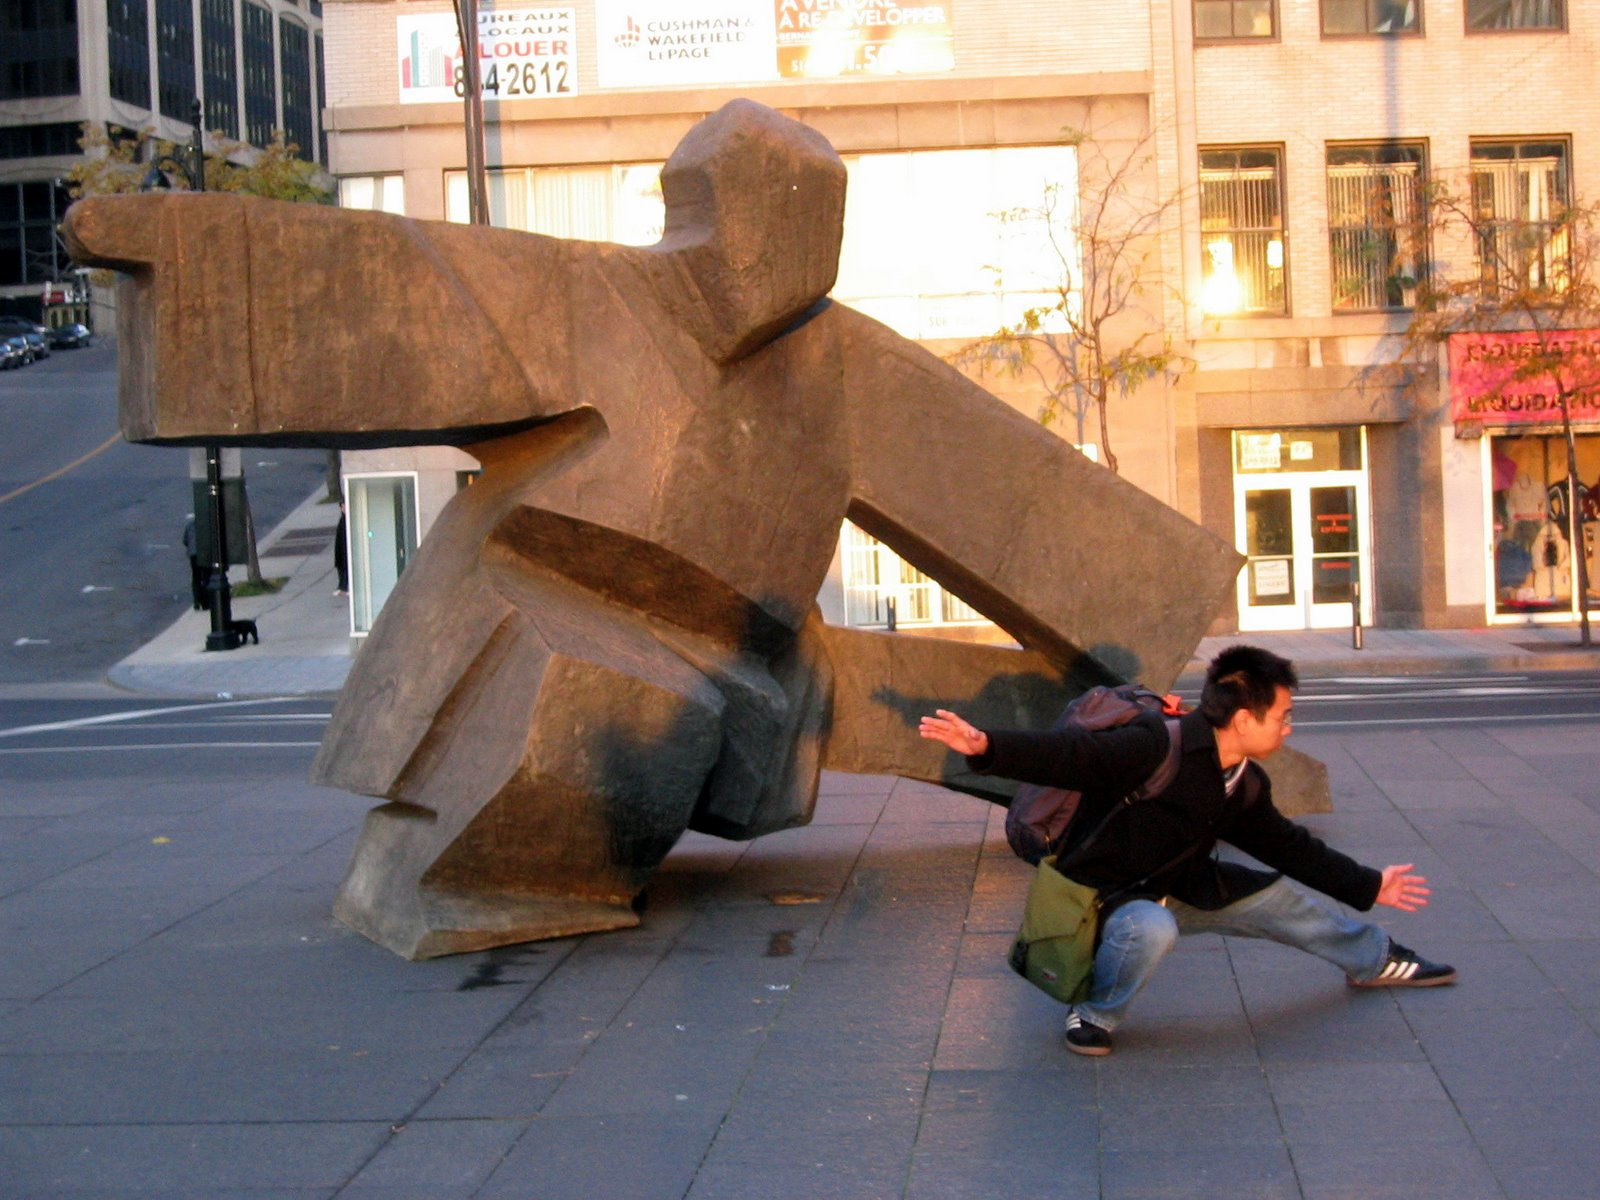 In Montreal they have a giant statue performing Taichi. I'm at the right, life imitating art imitating life.